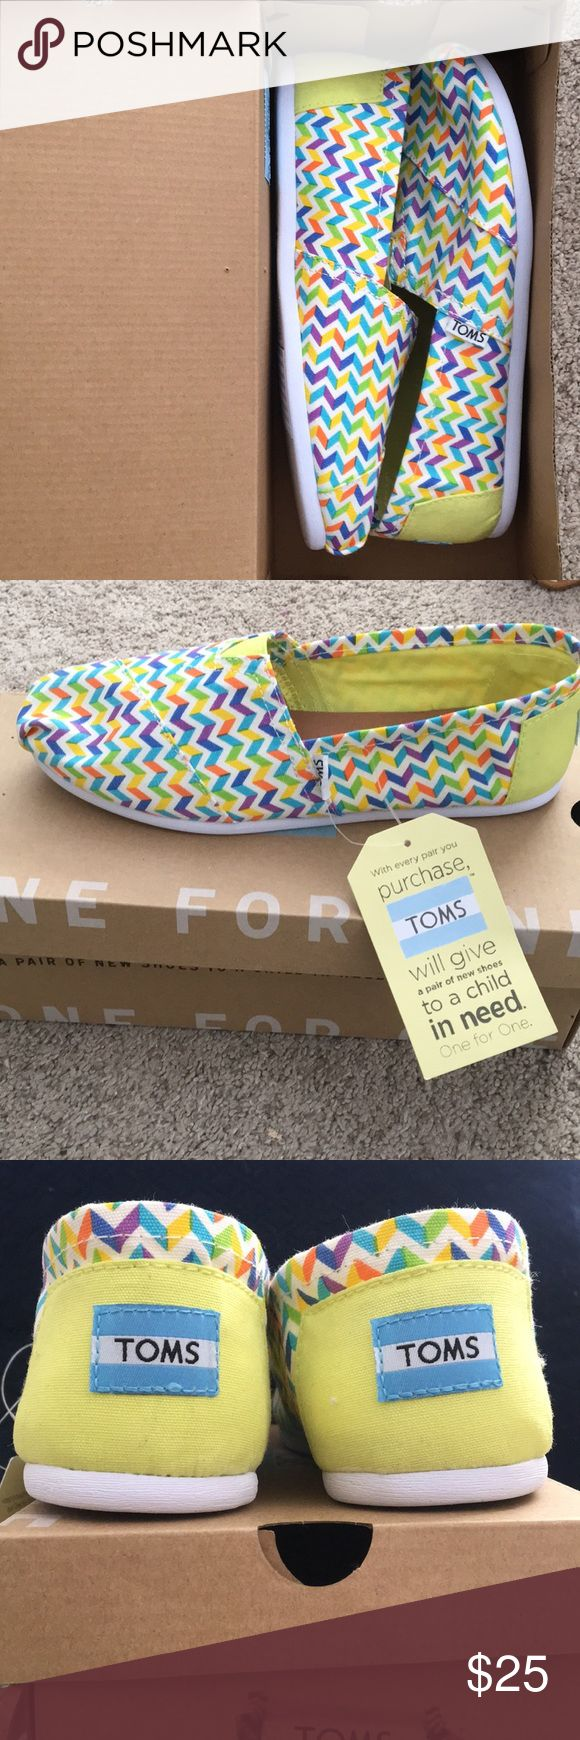 Brand New Toms Shoes Women's classic multi canvas chevron toms. Size 8. Never worn! Tag still on! Super cute! Toms Shoes Flats  Loafers